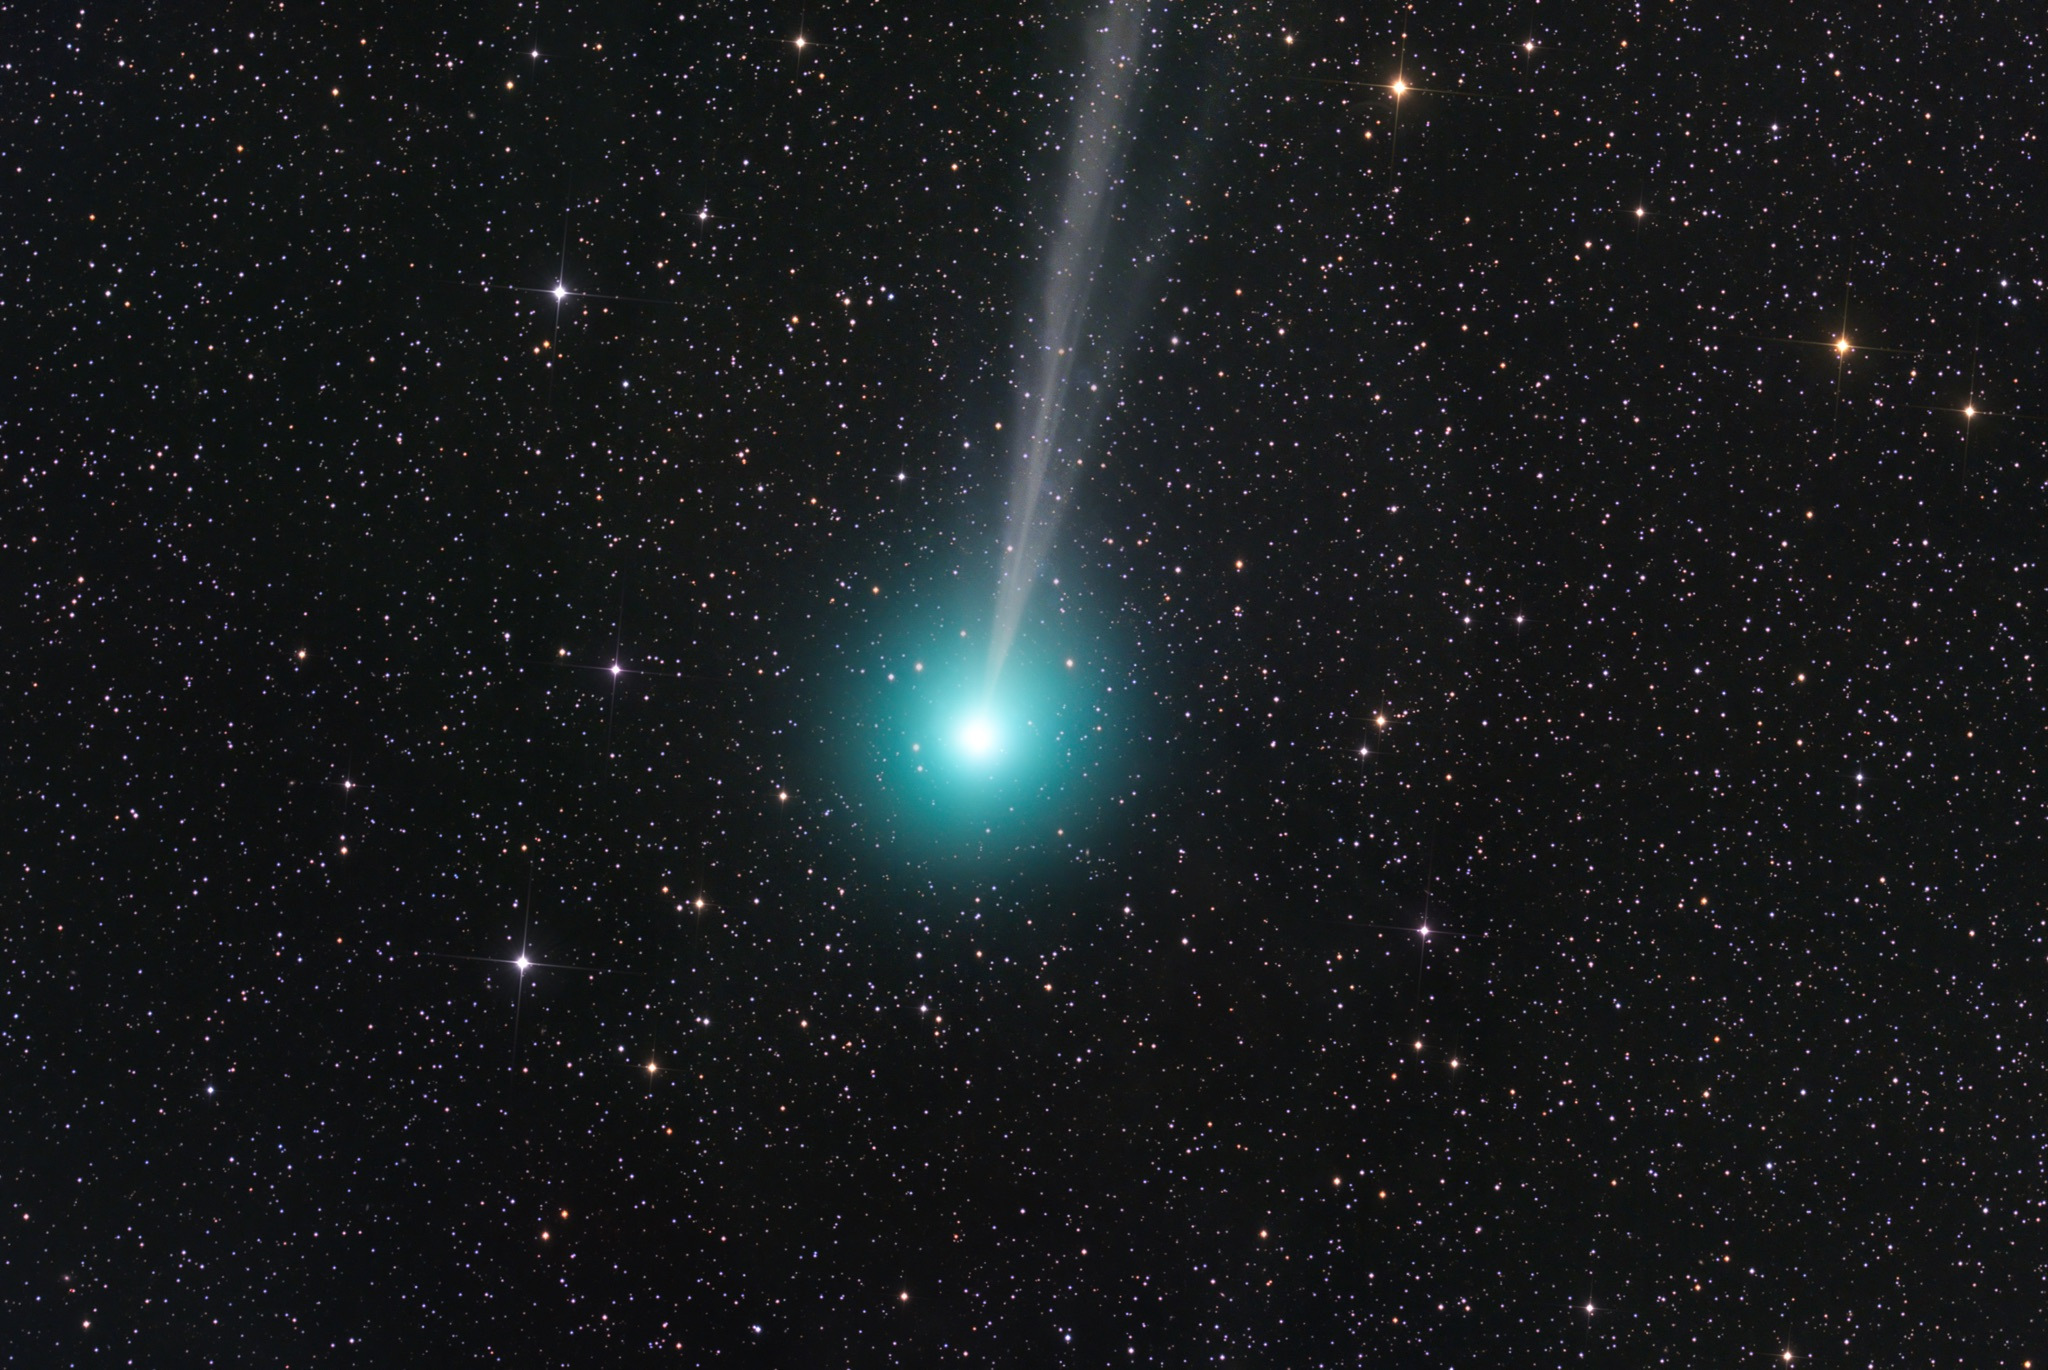 Jimmy Walker's ethereal image of Comet Lovejoy C/2014 Q2 was also captured with a FLI Microline 11002 CCD camera on the RASA, this time in 20 x two-minute exposures on a Bisque mount, also under New Mexico skies. Image credit: © Jimmy Walker, used with permission.